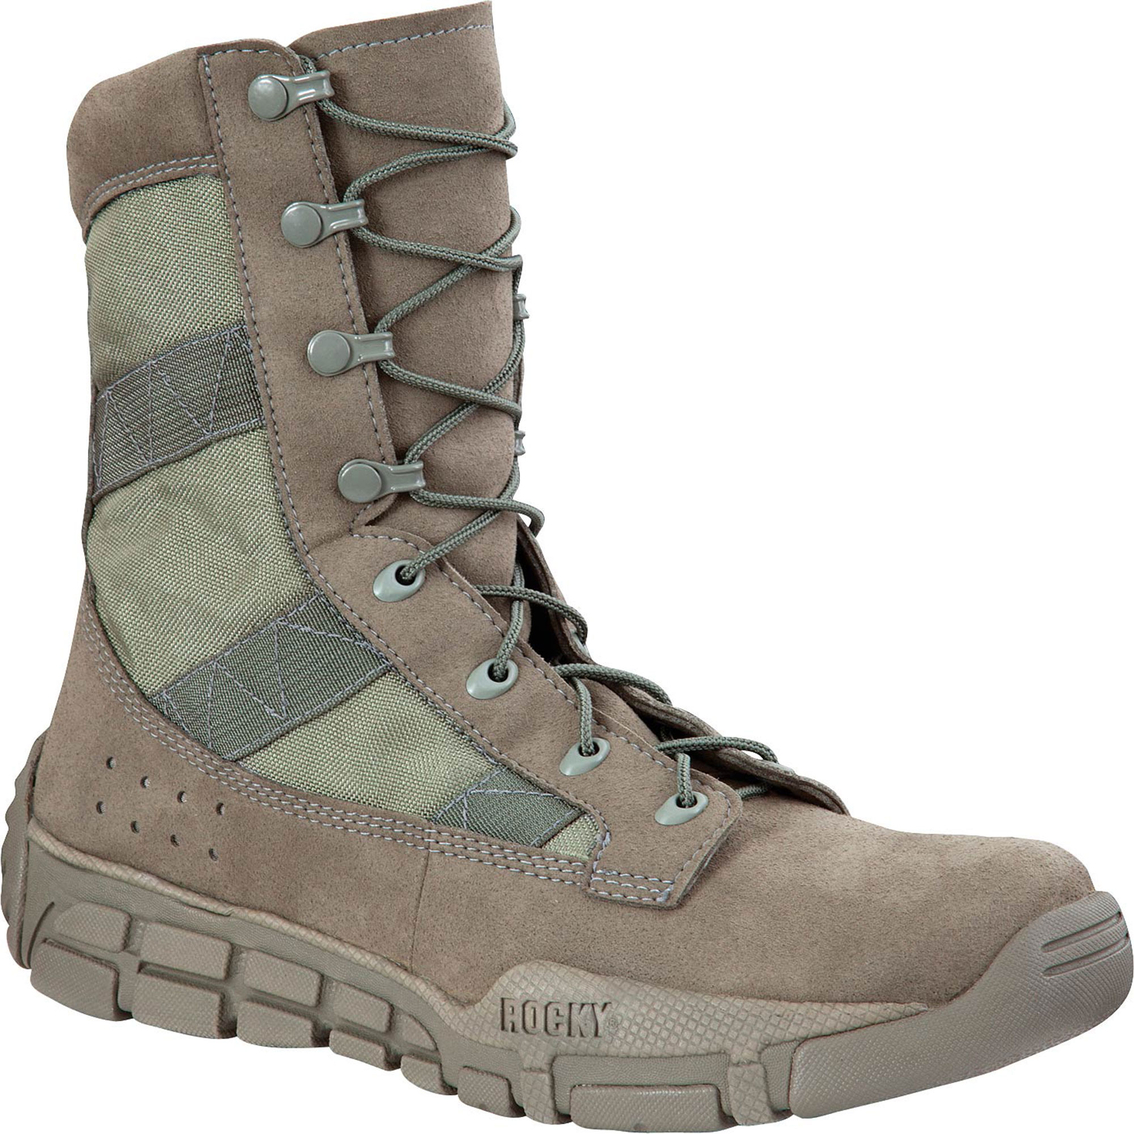 Rocky Men's C4t Lightweight Training Boots | Rocky Boots | More ...